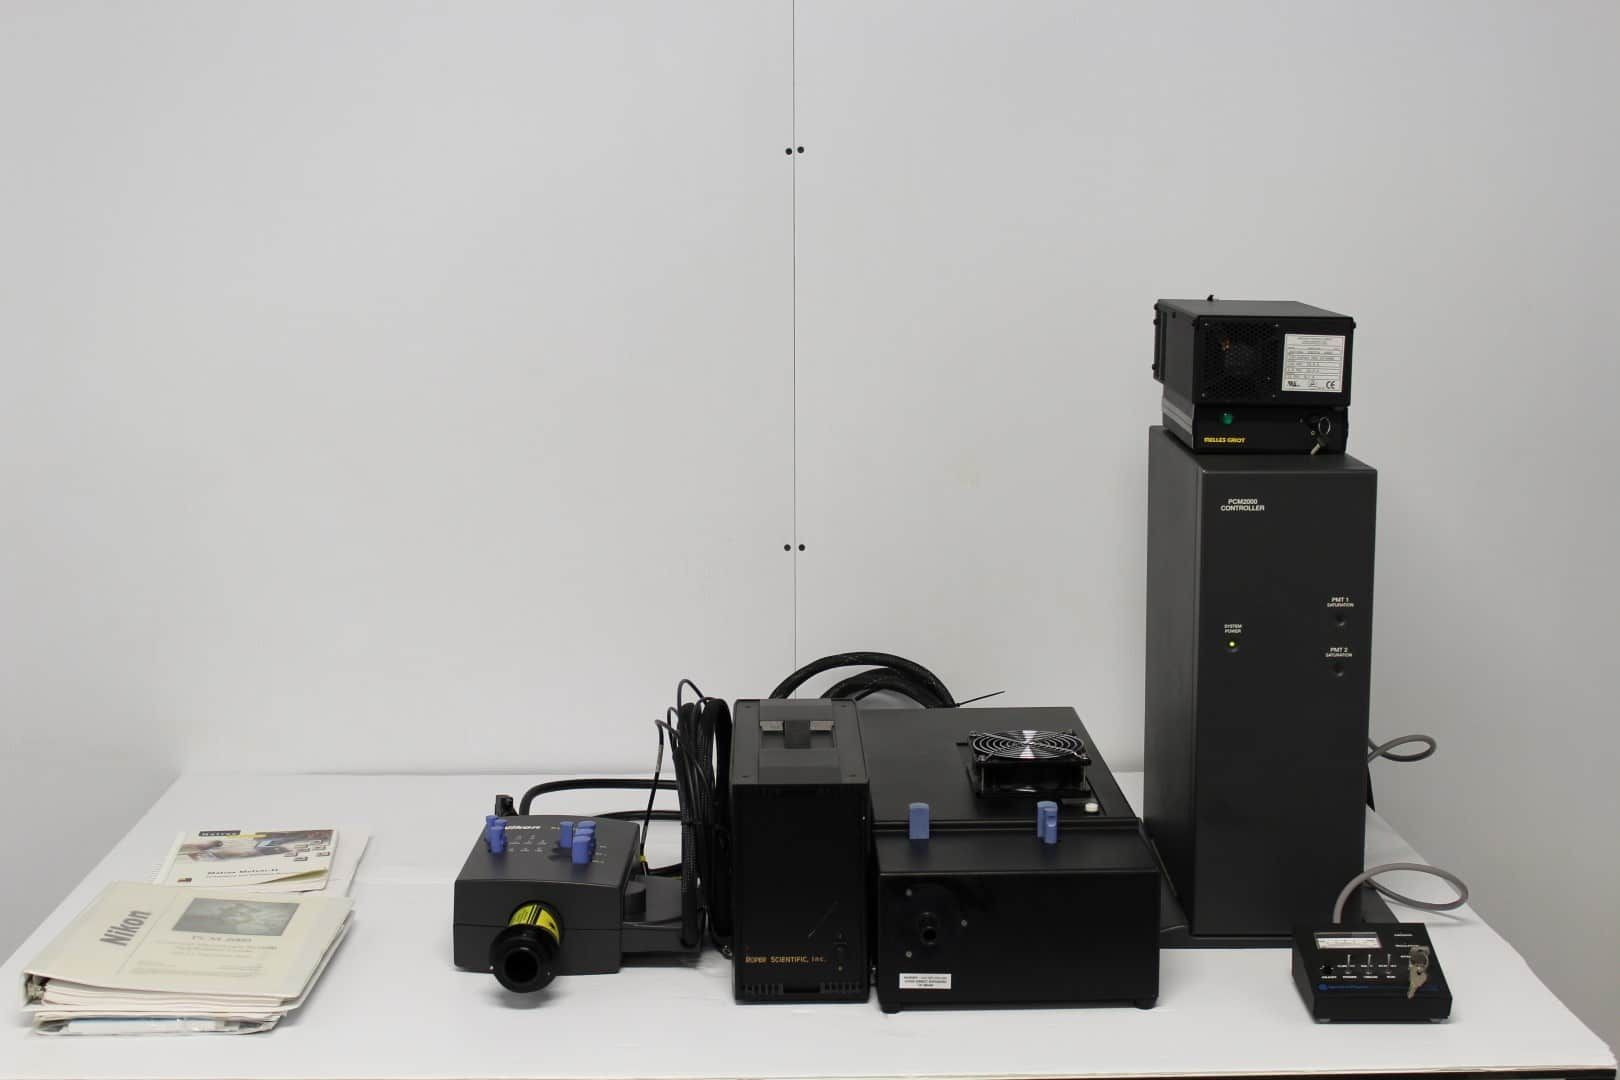 Nikon PCM2000 Confocal Laser w/ Melles, Spectra Physics, Zygo and Roper Supplies